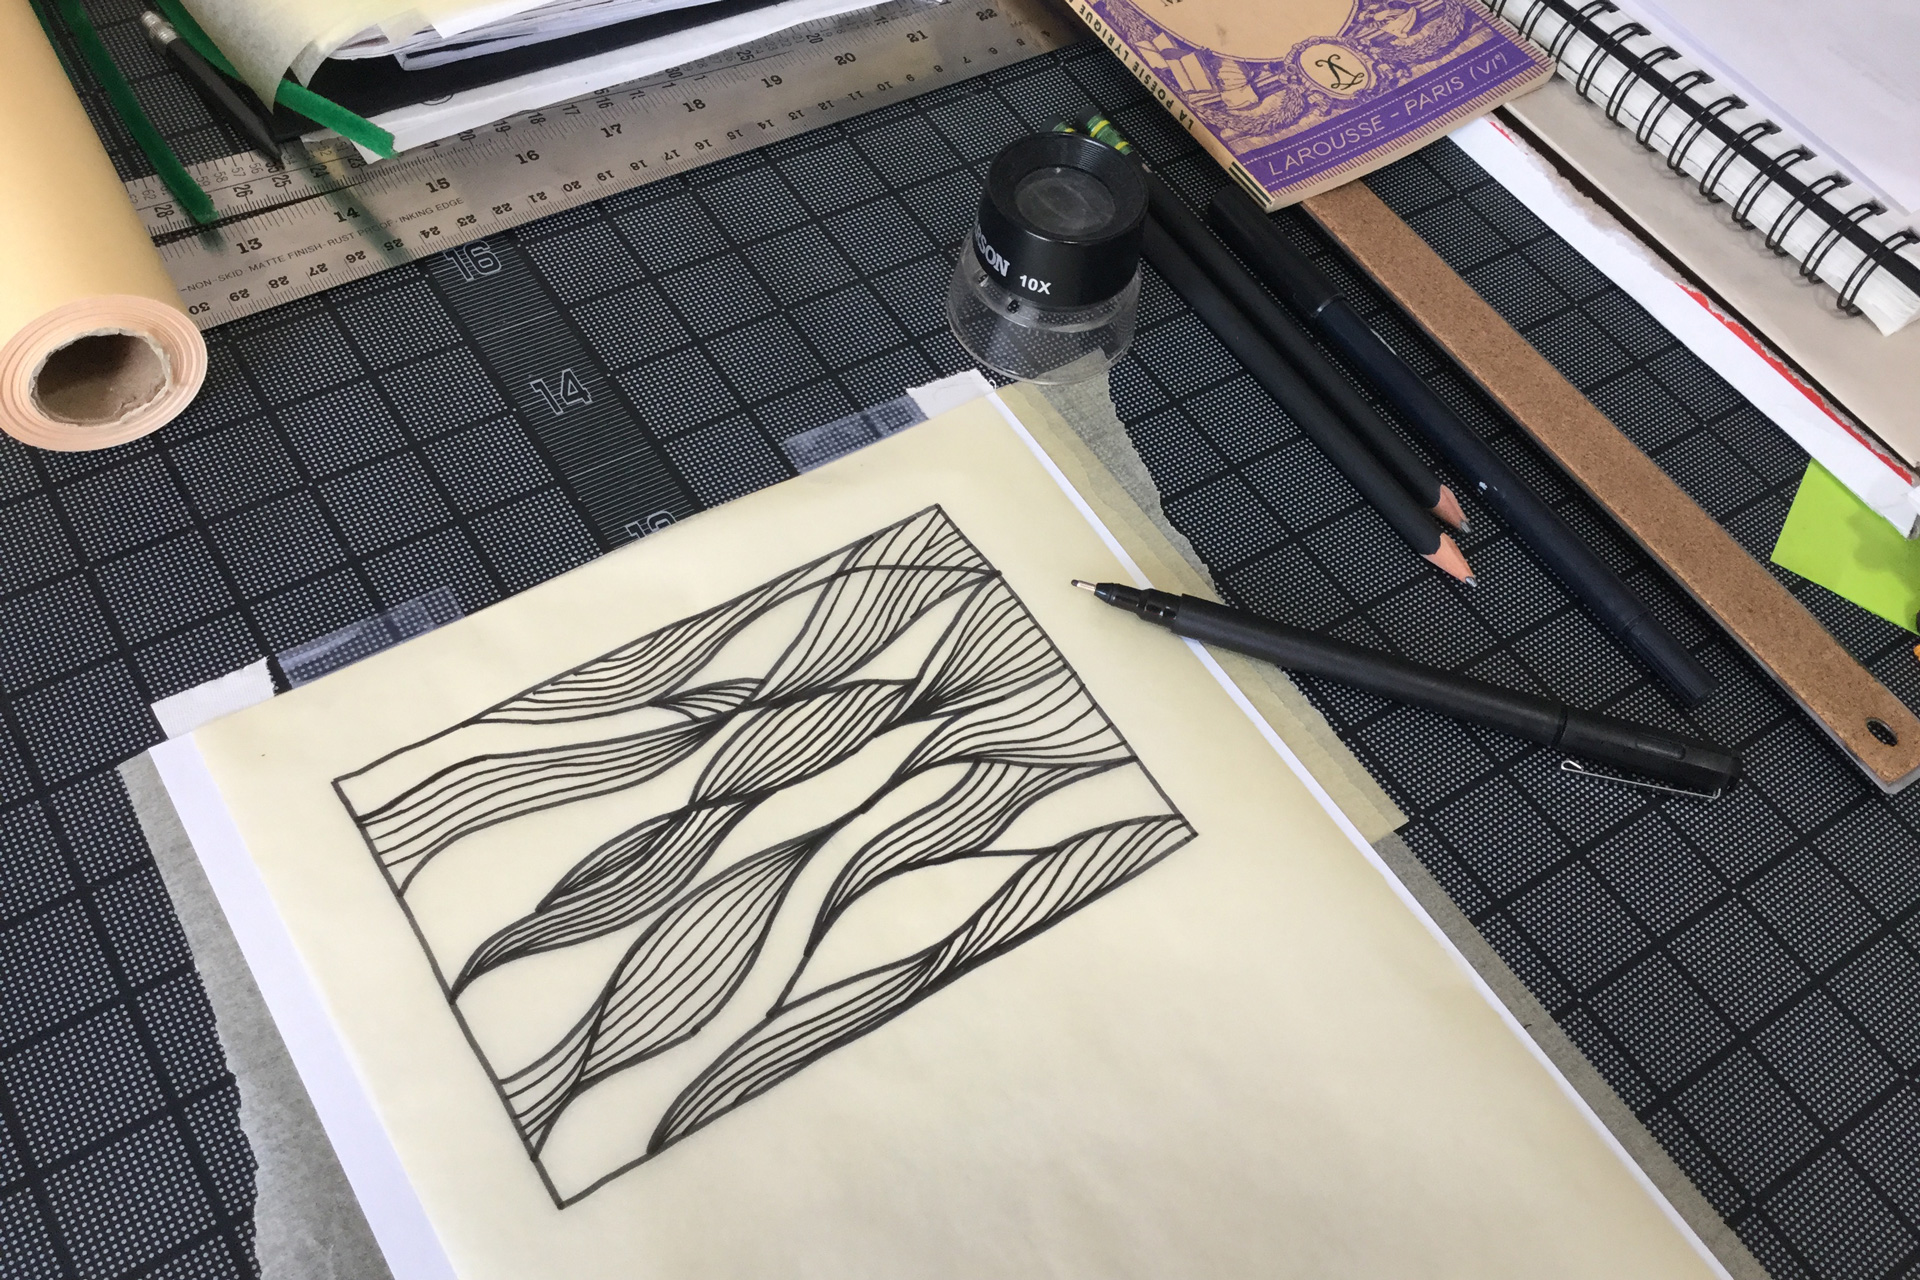 A wavy pattern hand-drawn on a sheet of tracing paper next to pens and notebooks atop a black gridded mat